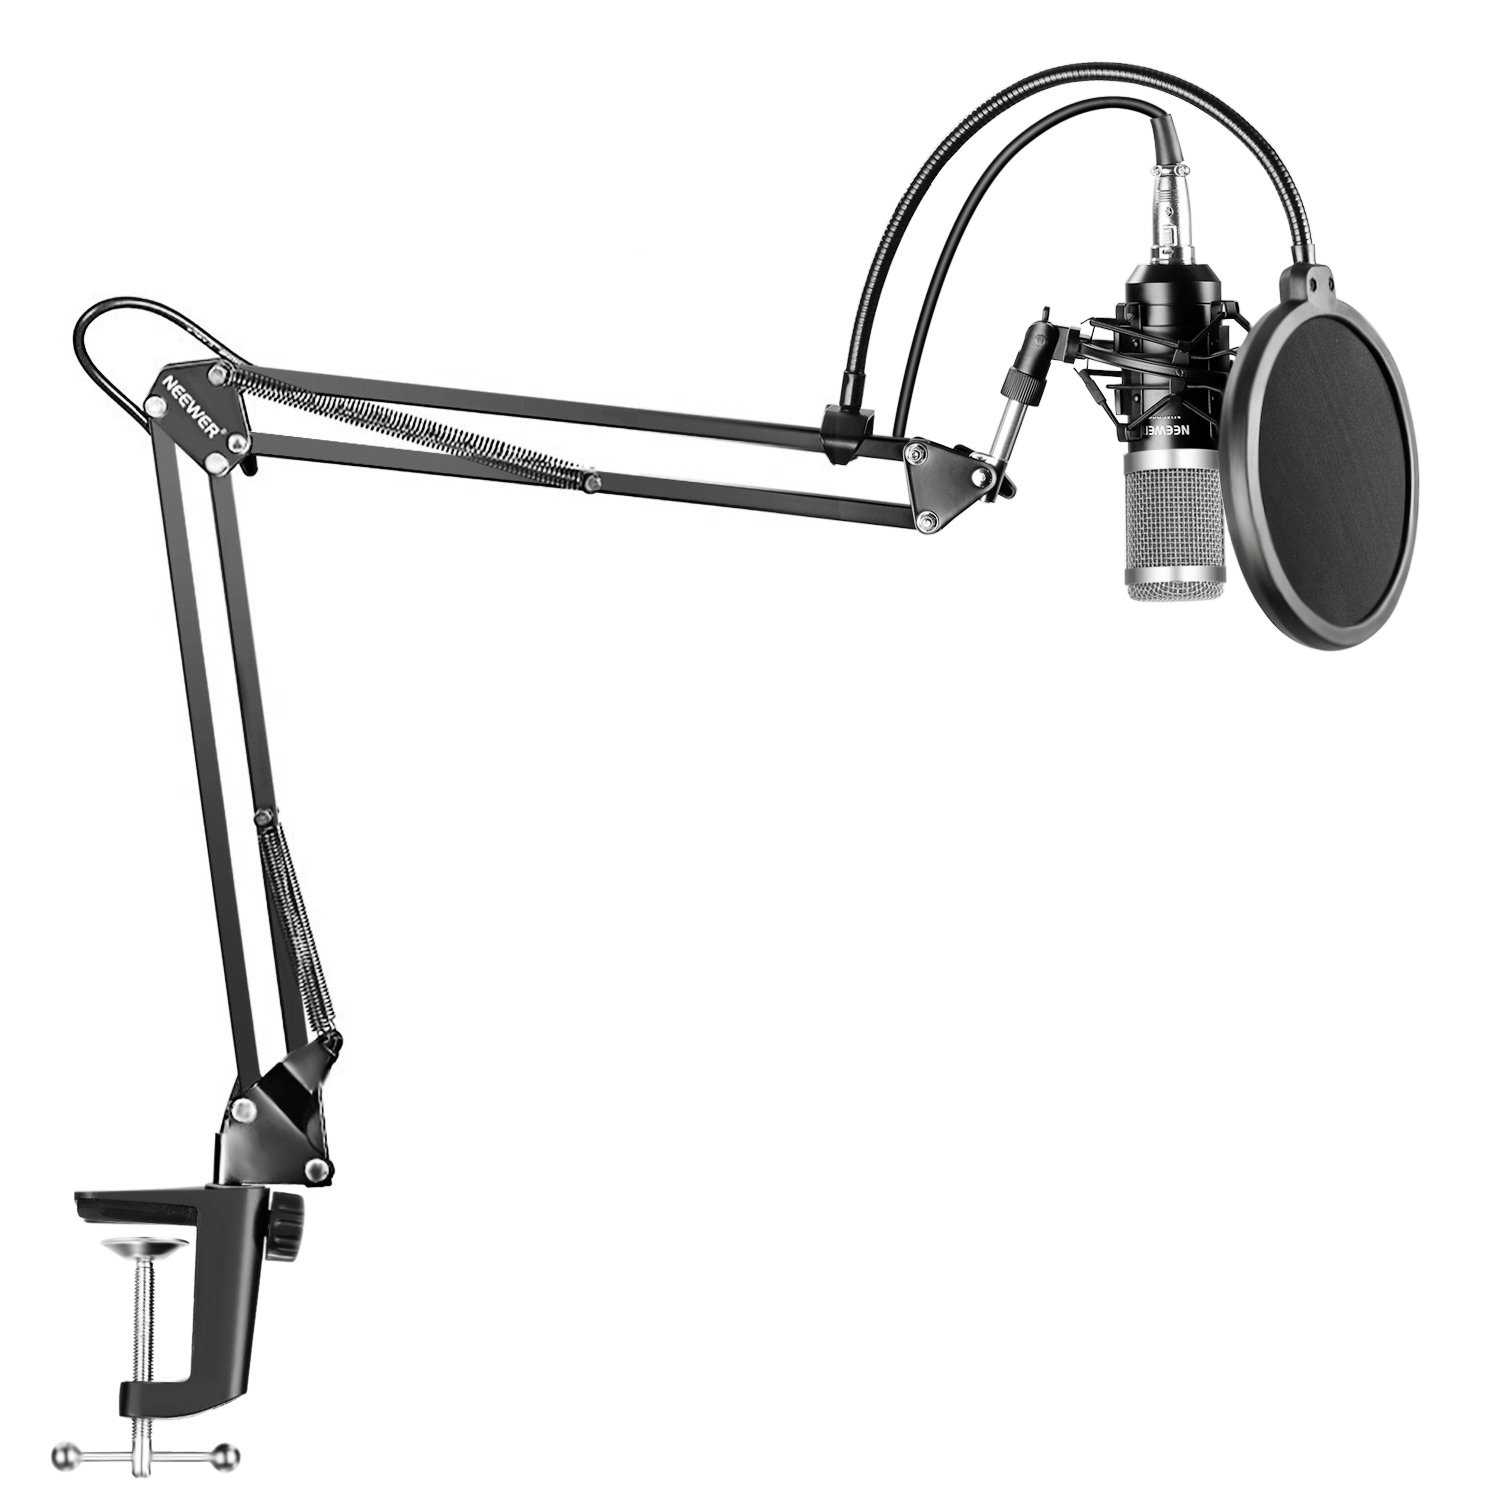 Neewer NW-800 Silver Professional Studio Broadcasting Recording Condenser Microphone & NW-35 Adjustable Recording Microphone Suspension Scissor Arm Stand with Shock Mount and Mounting Clamp Kit 40091937